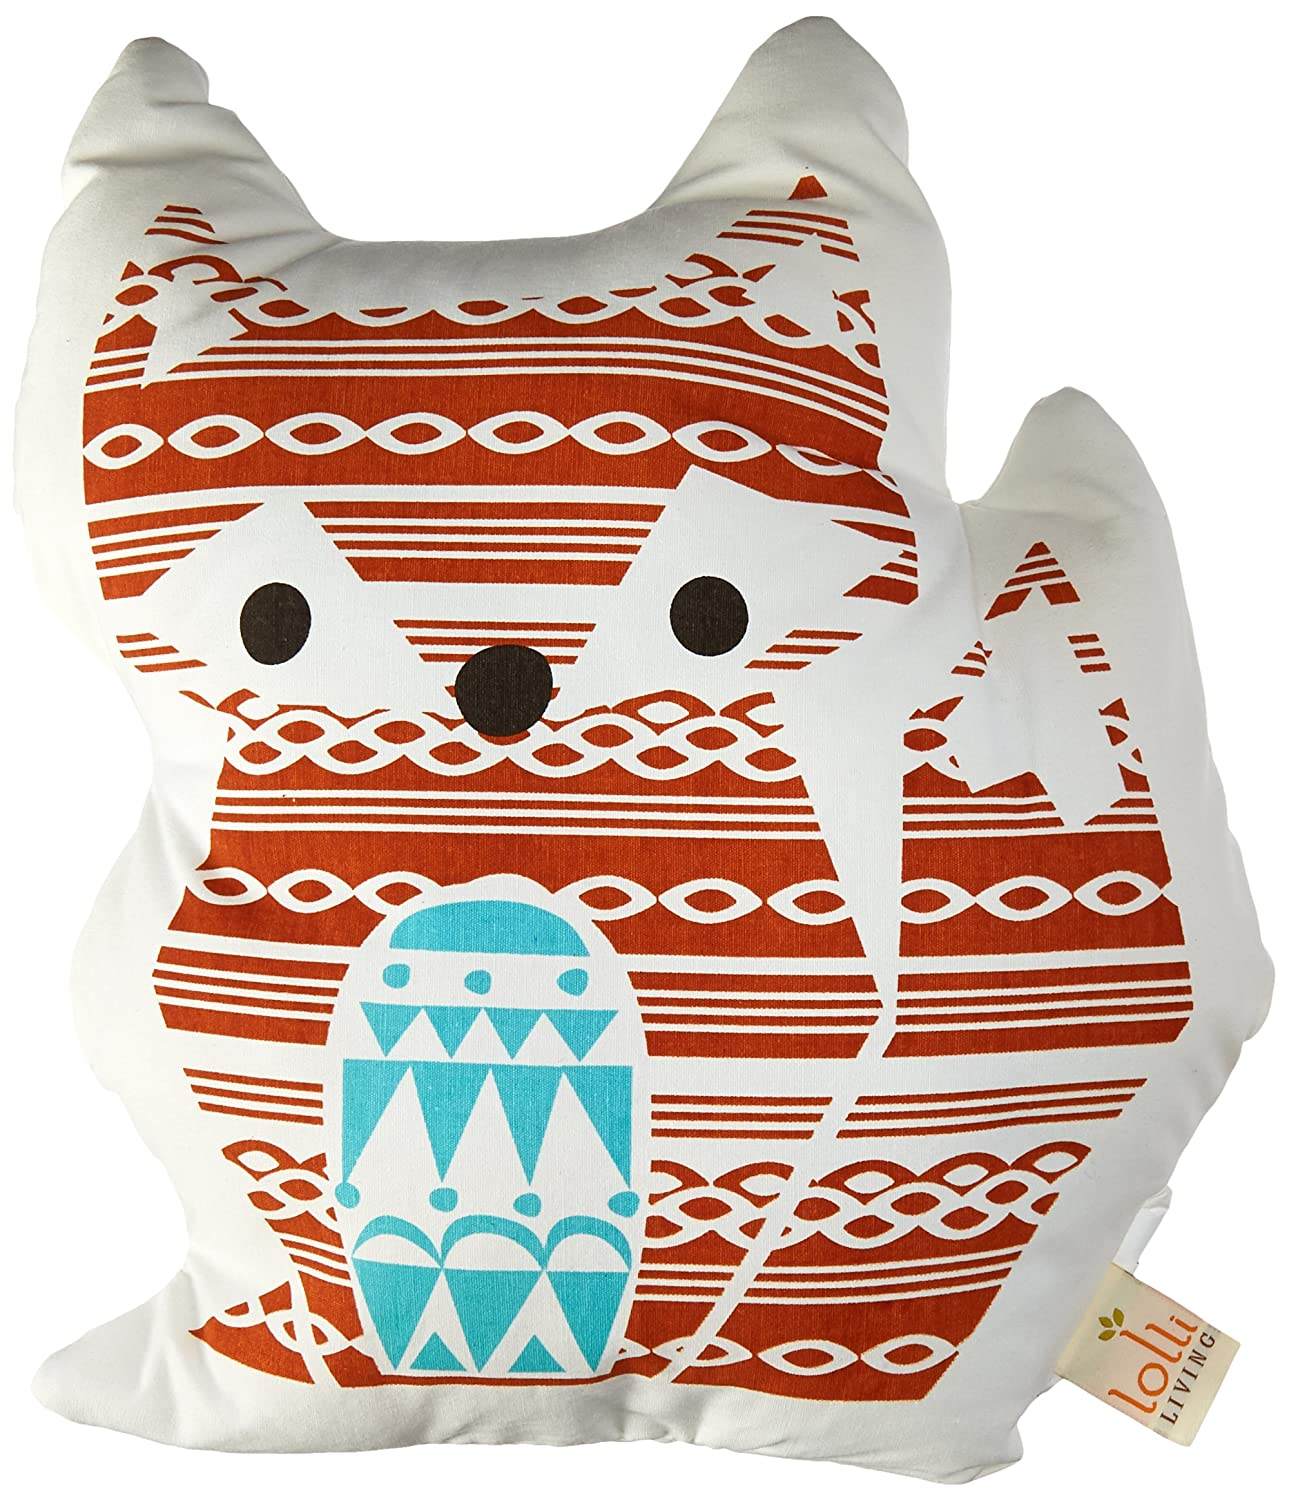 Lolli Living Woods Character Cushion - Fox 223036